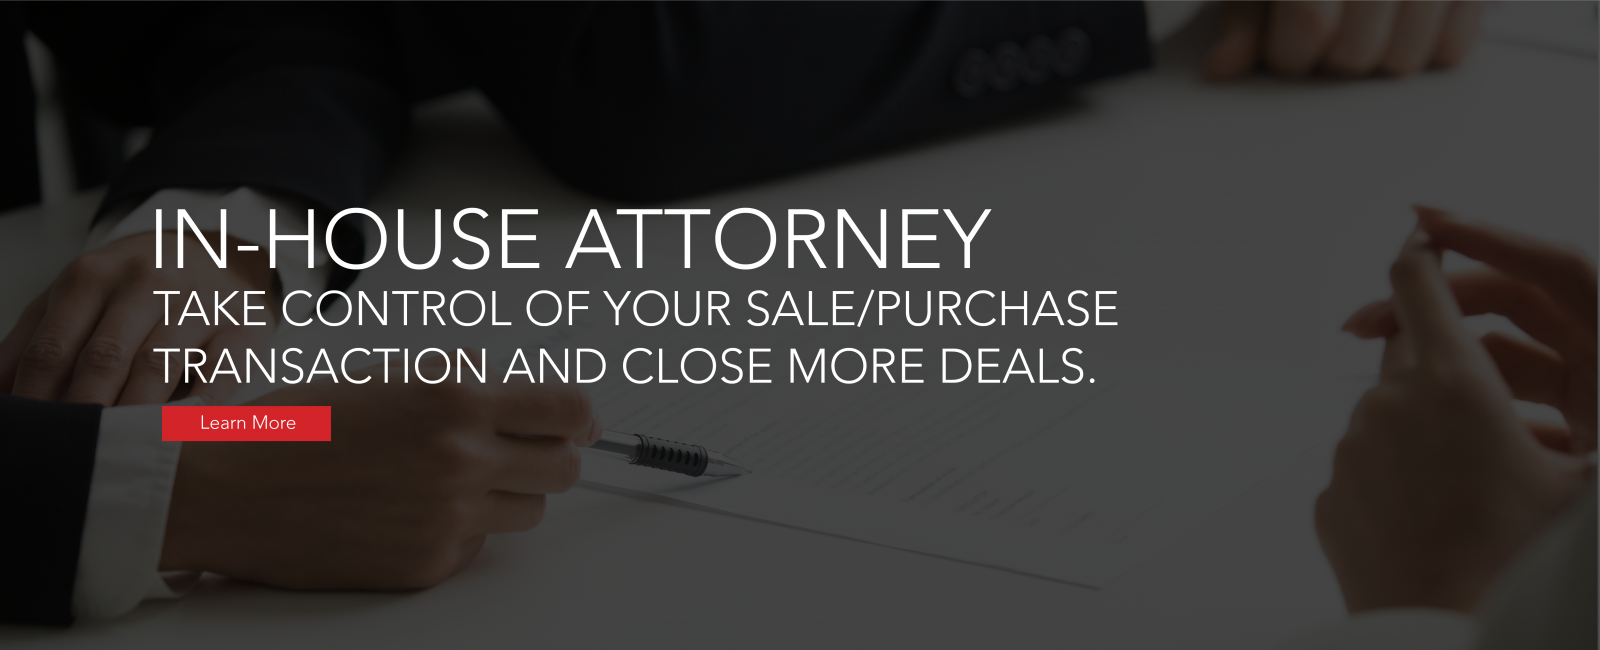 in-house attorney